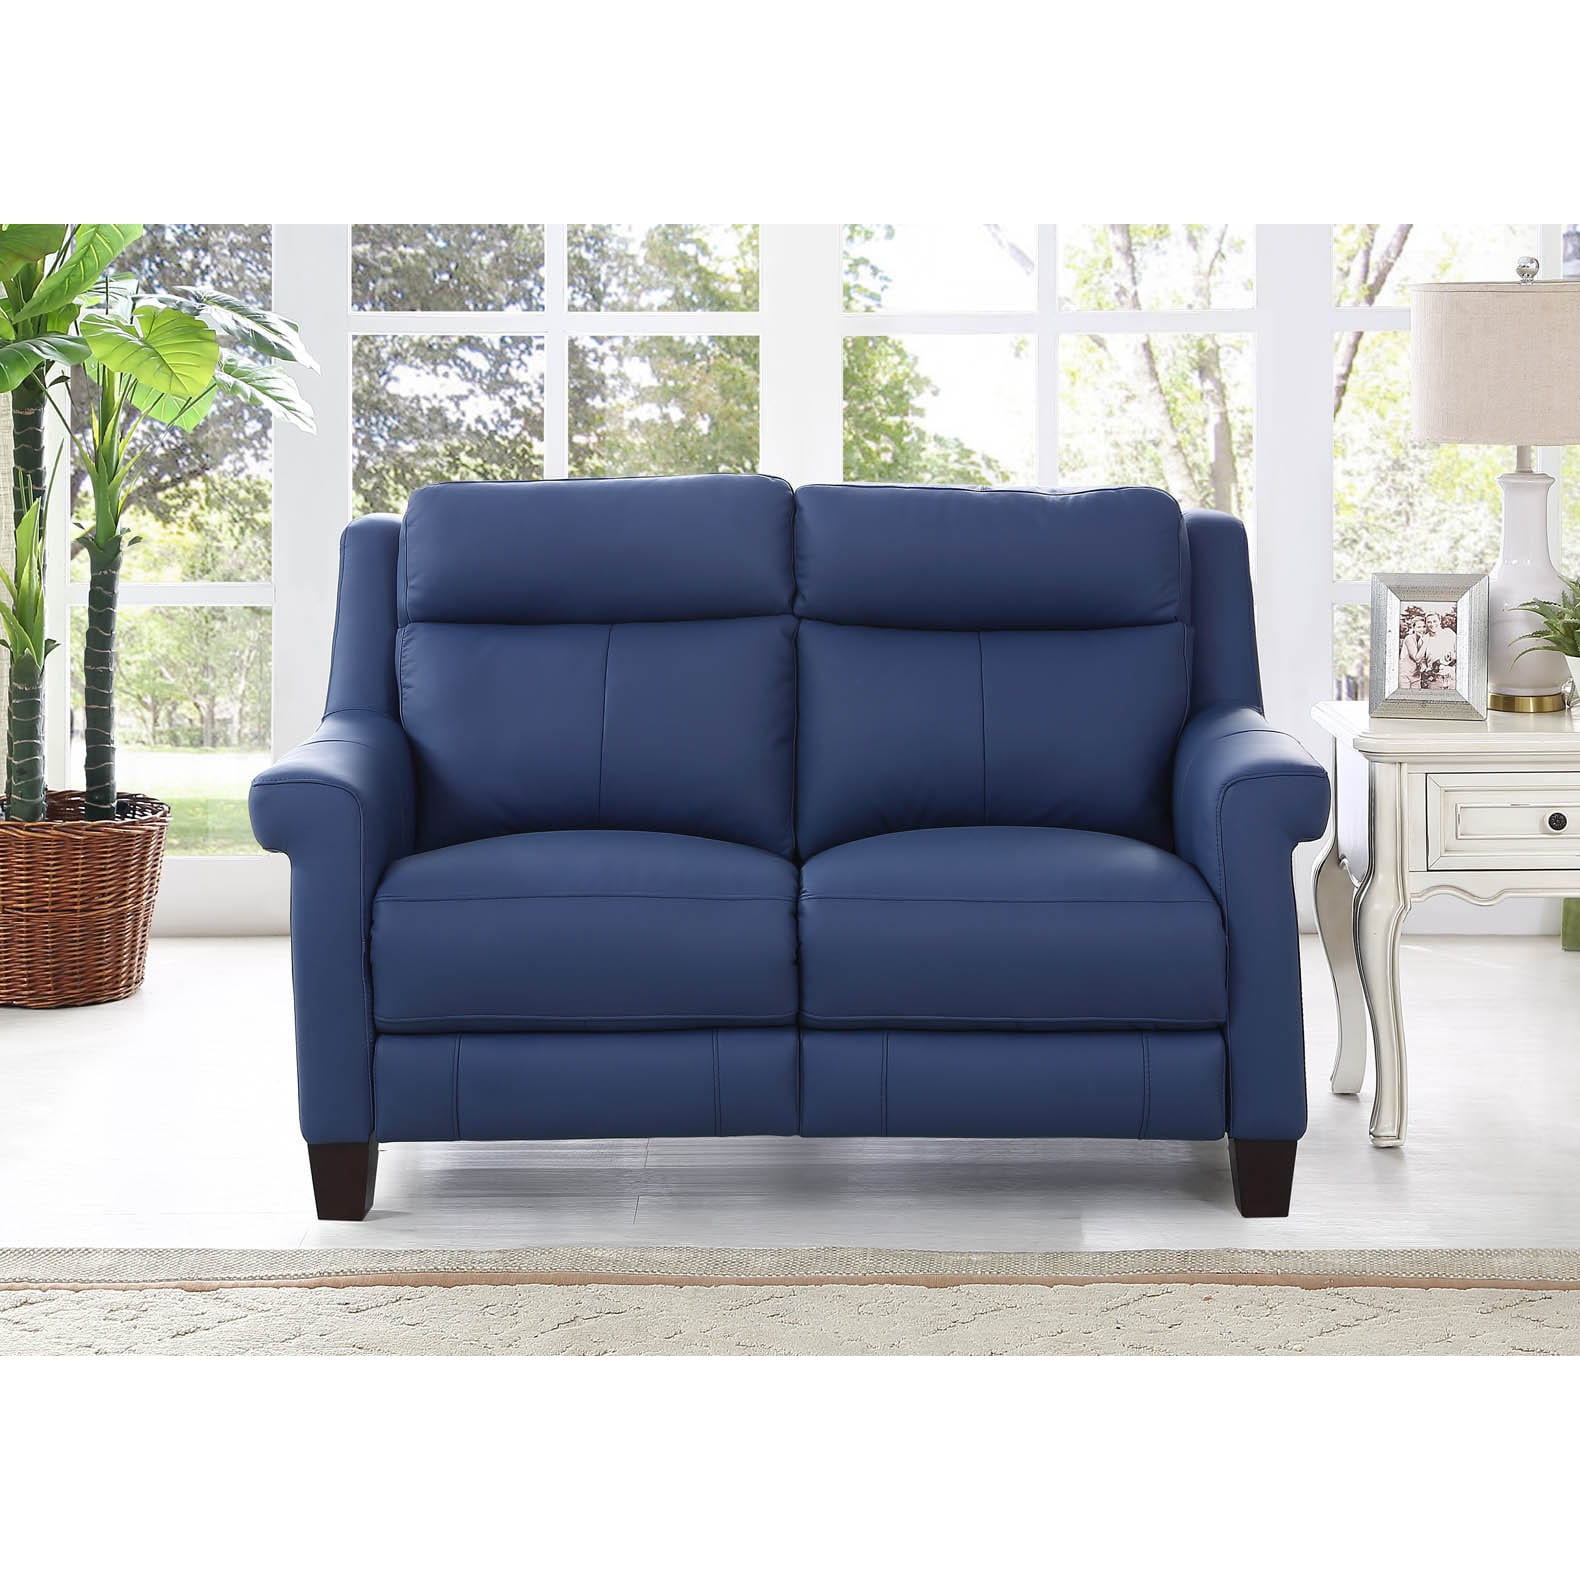 Shop Hydeline By Amax Dolce Top Grain Blue Leather Power Reclining Loveseat Sofa Overstock 14639175